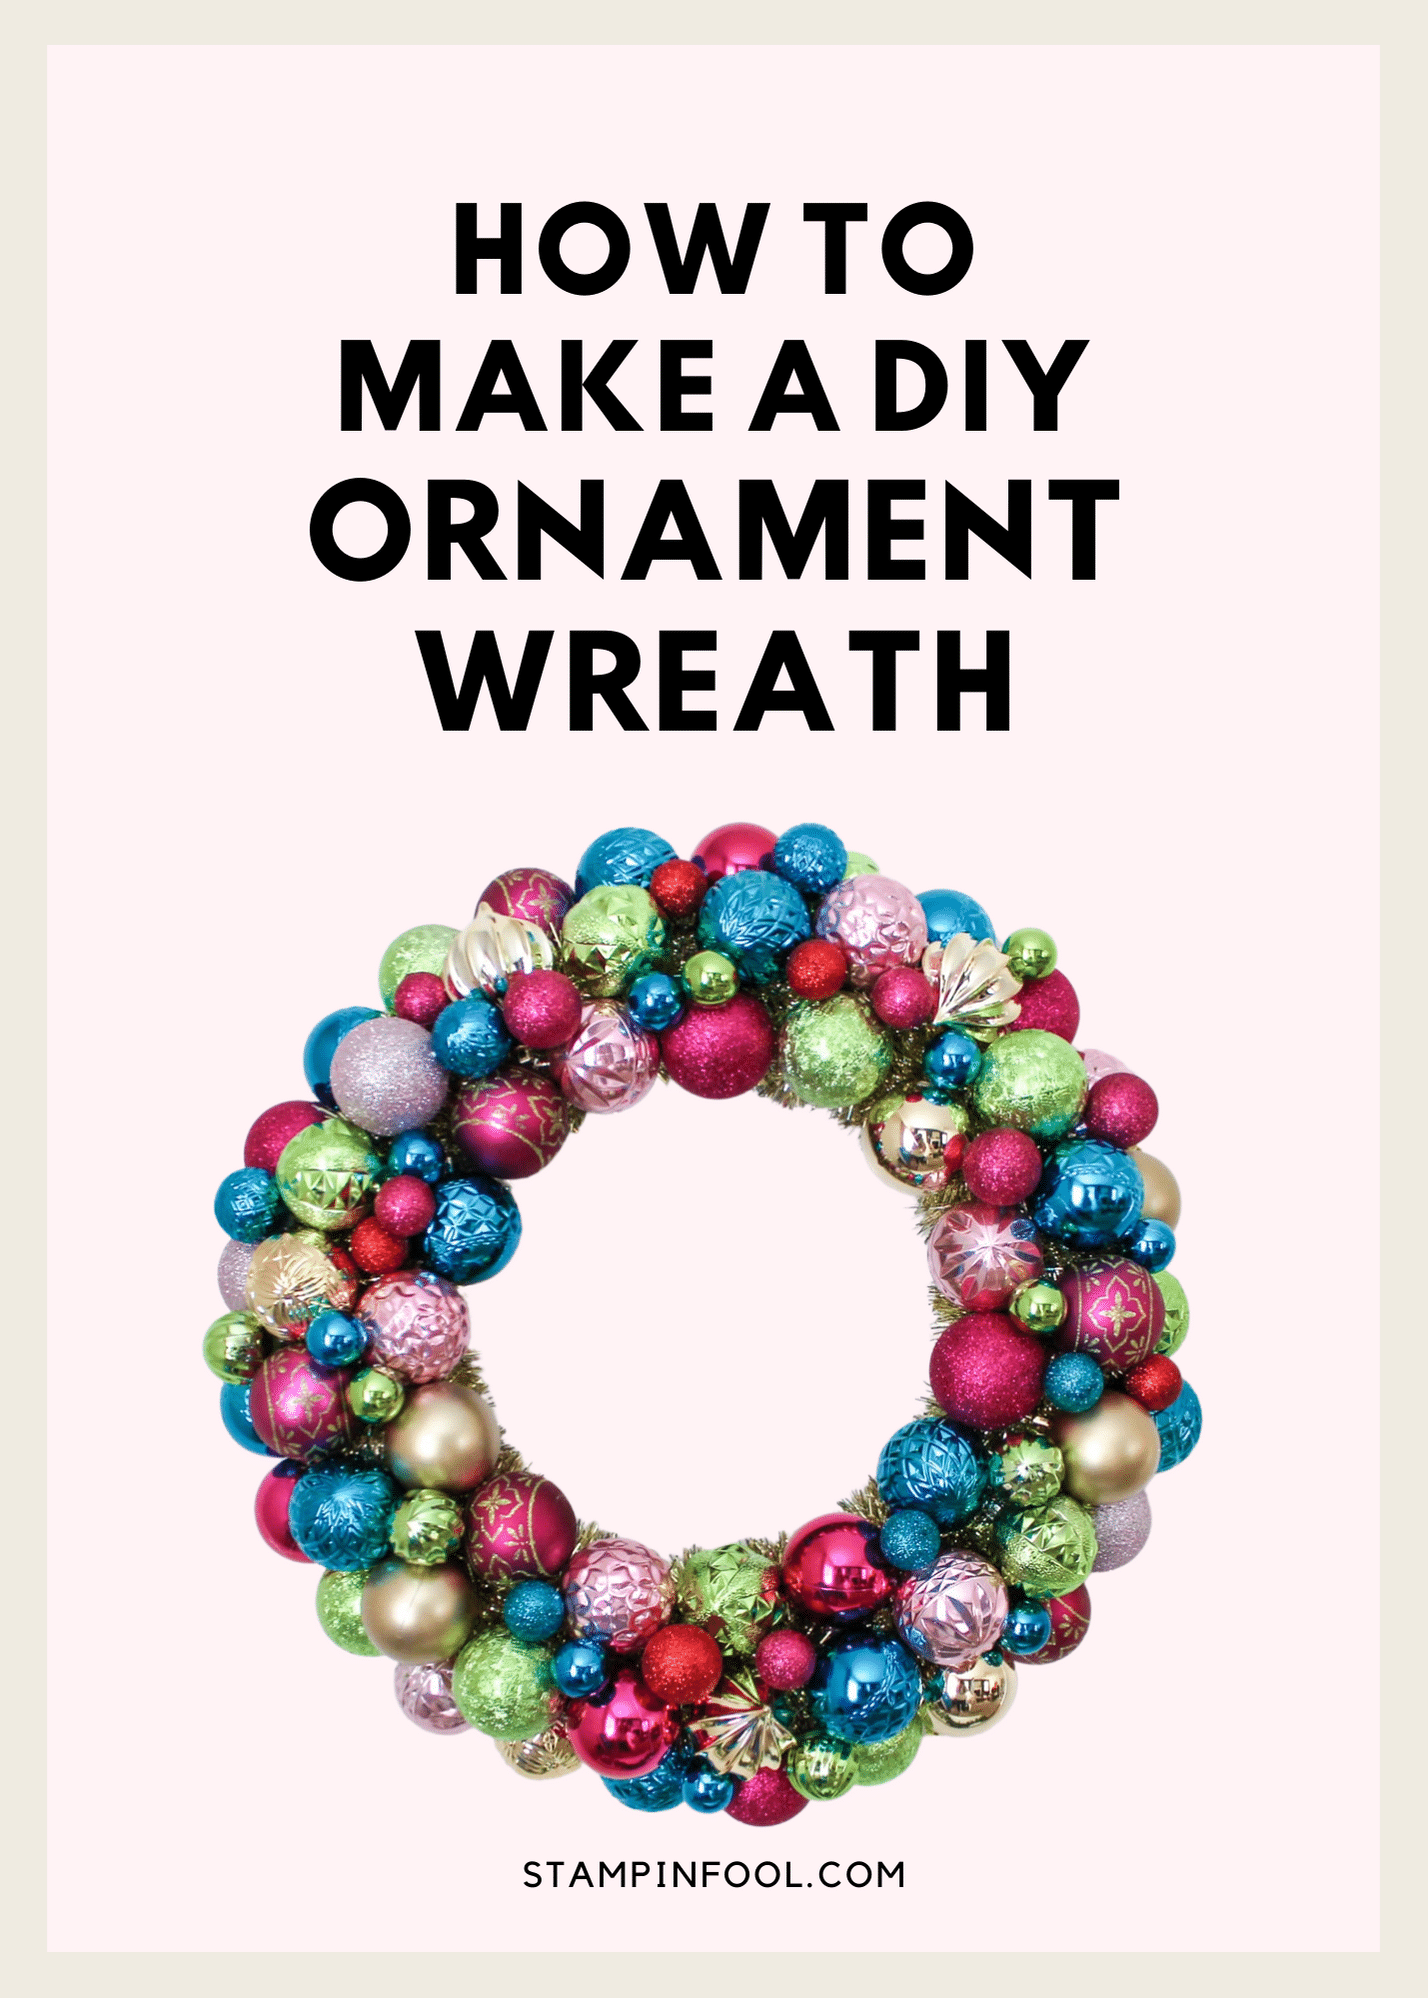 How to Make a DIY Ornament Wreath for your front door